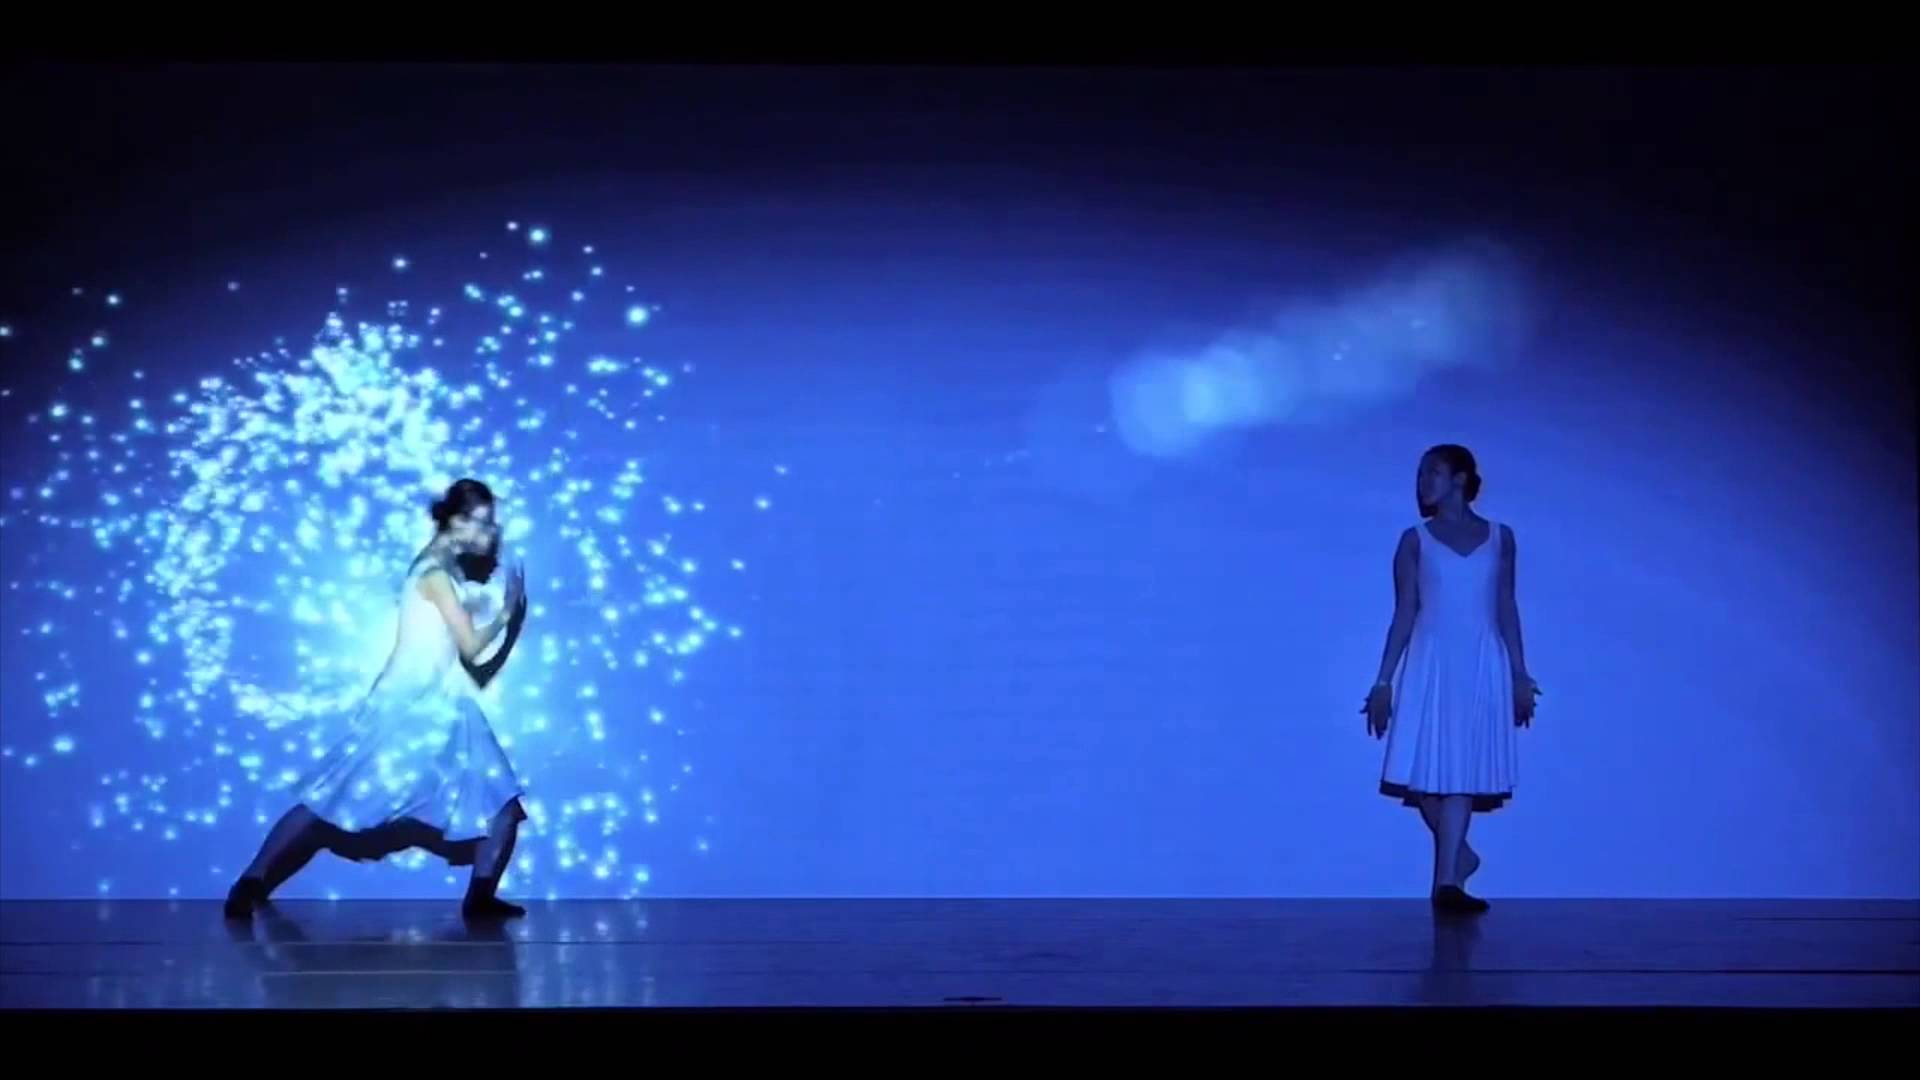 Interactive Dancers with Particles